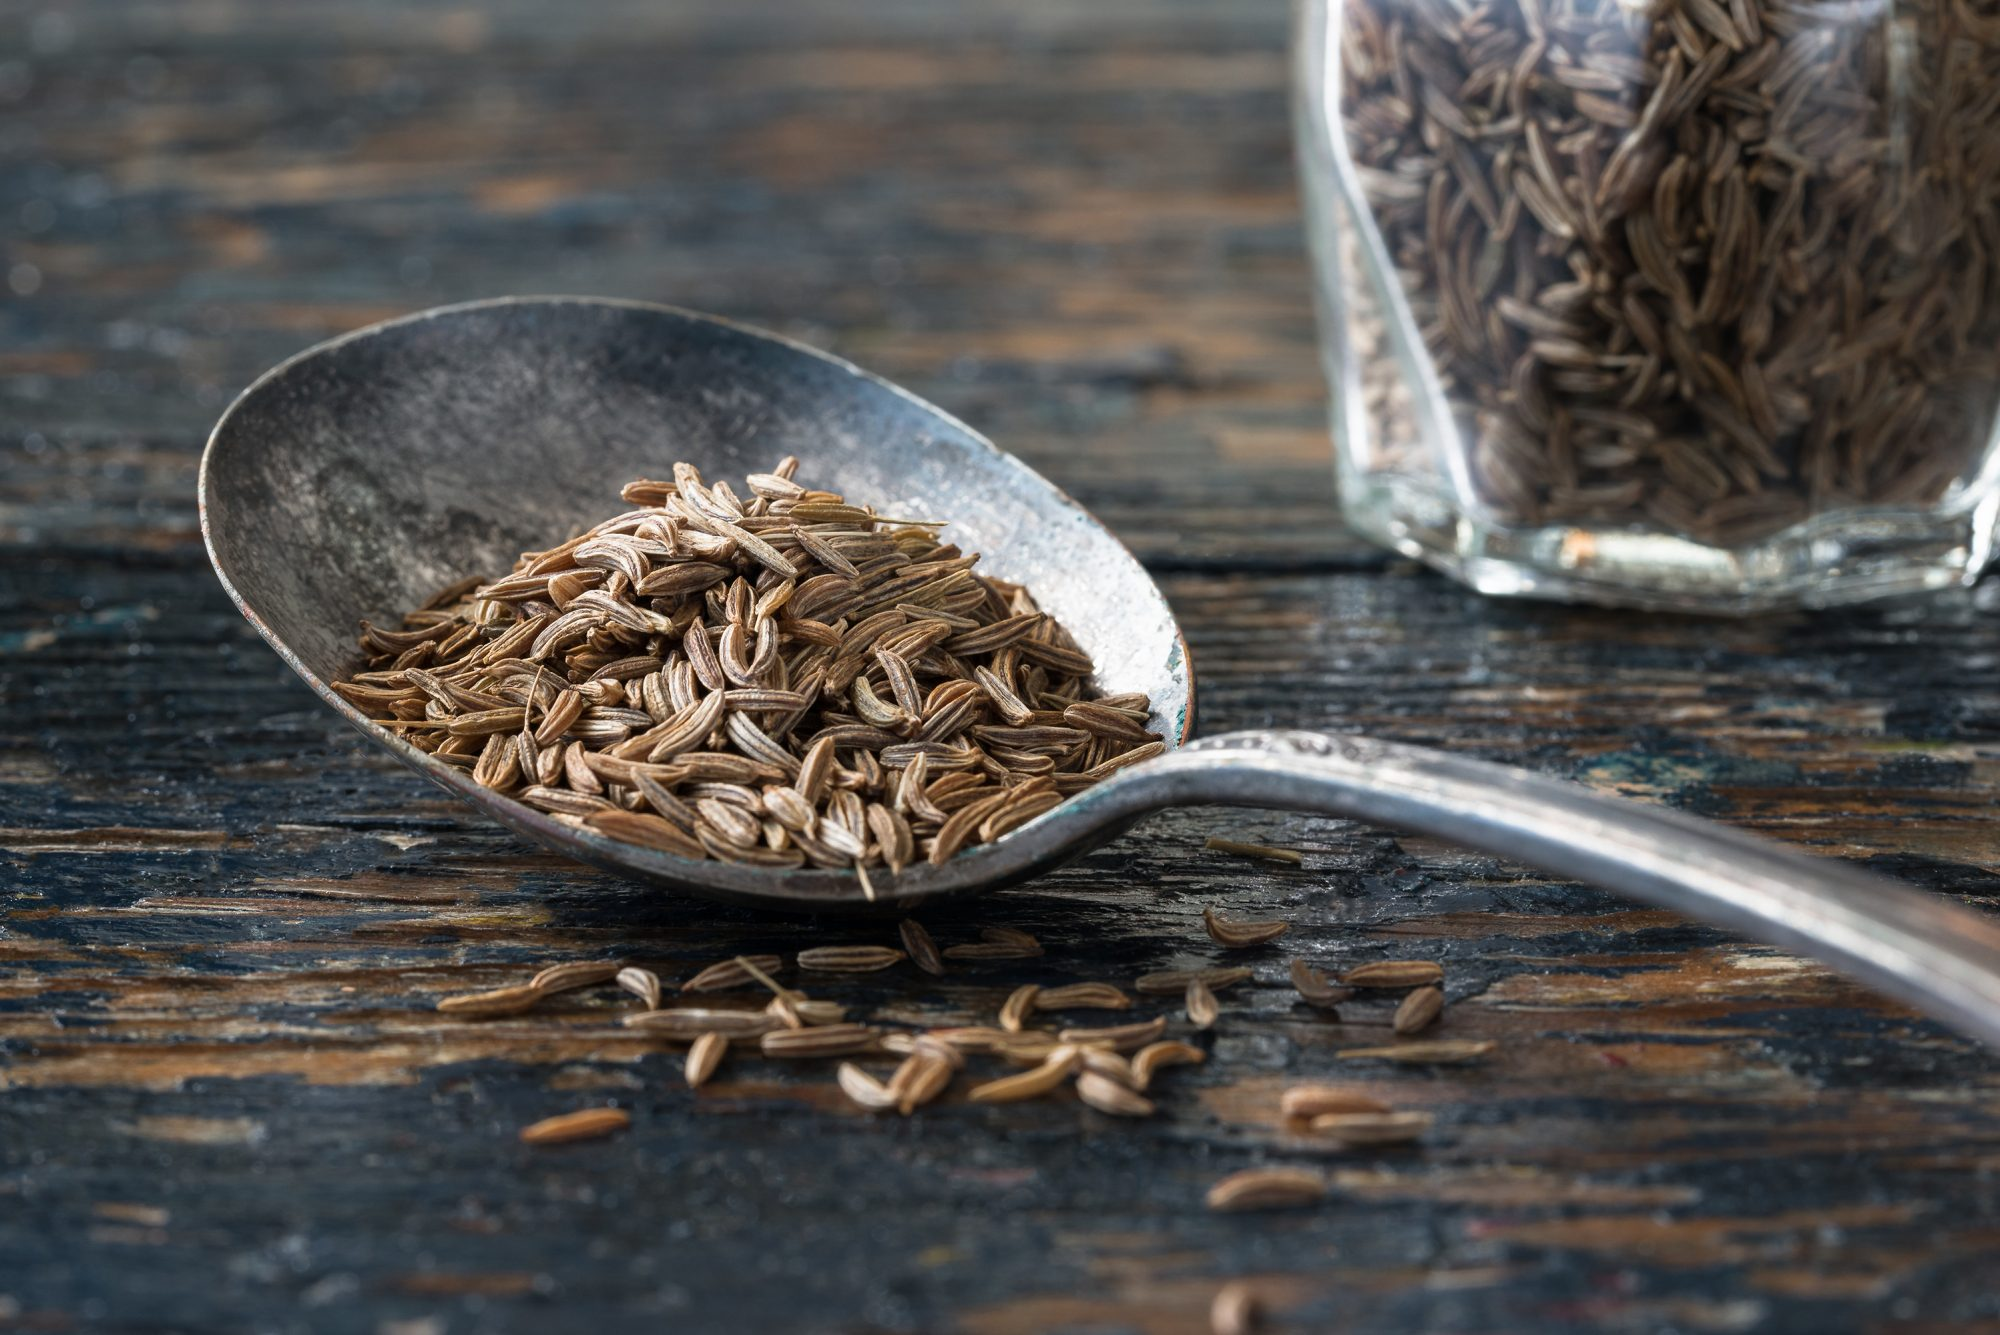 Close-Up Of Caraway Seeds In Old Spoon On Wooden Table